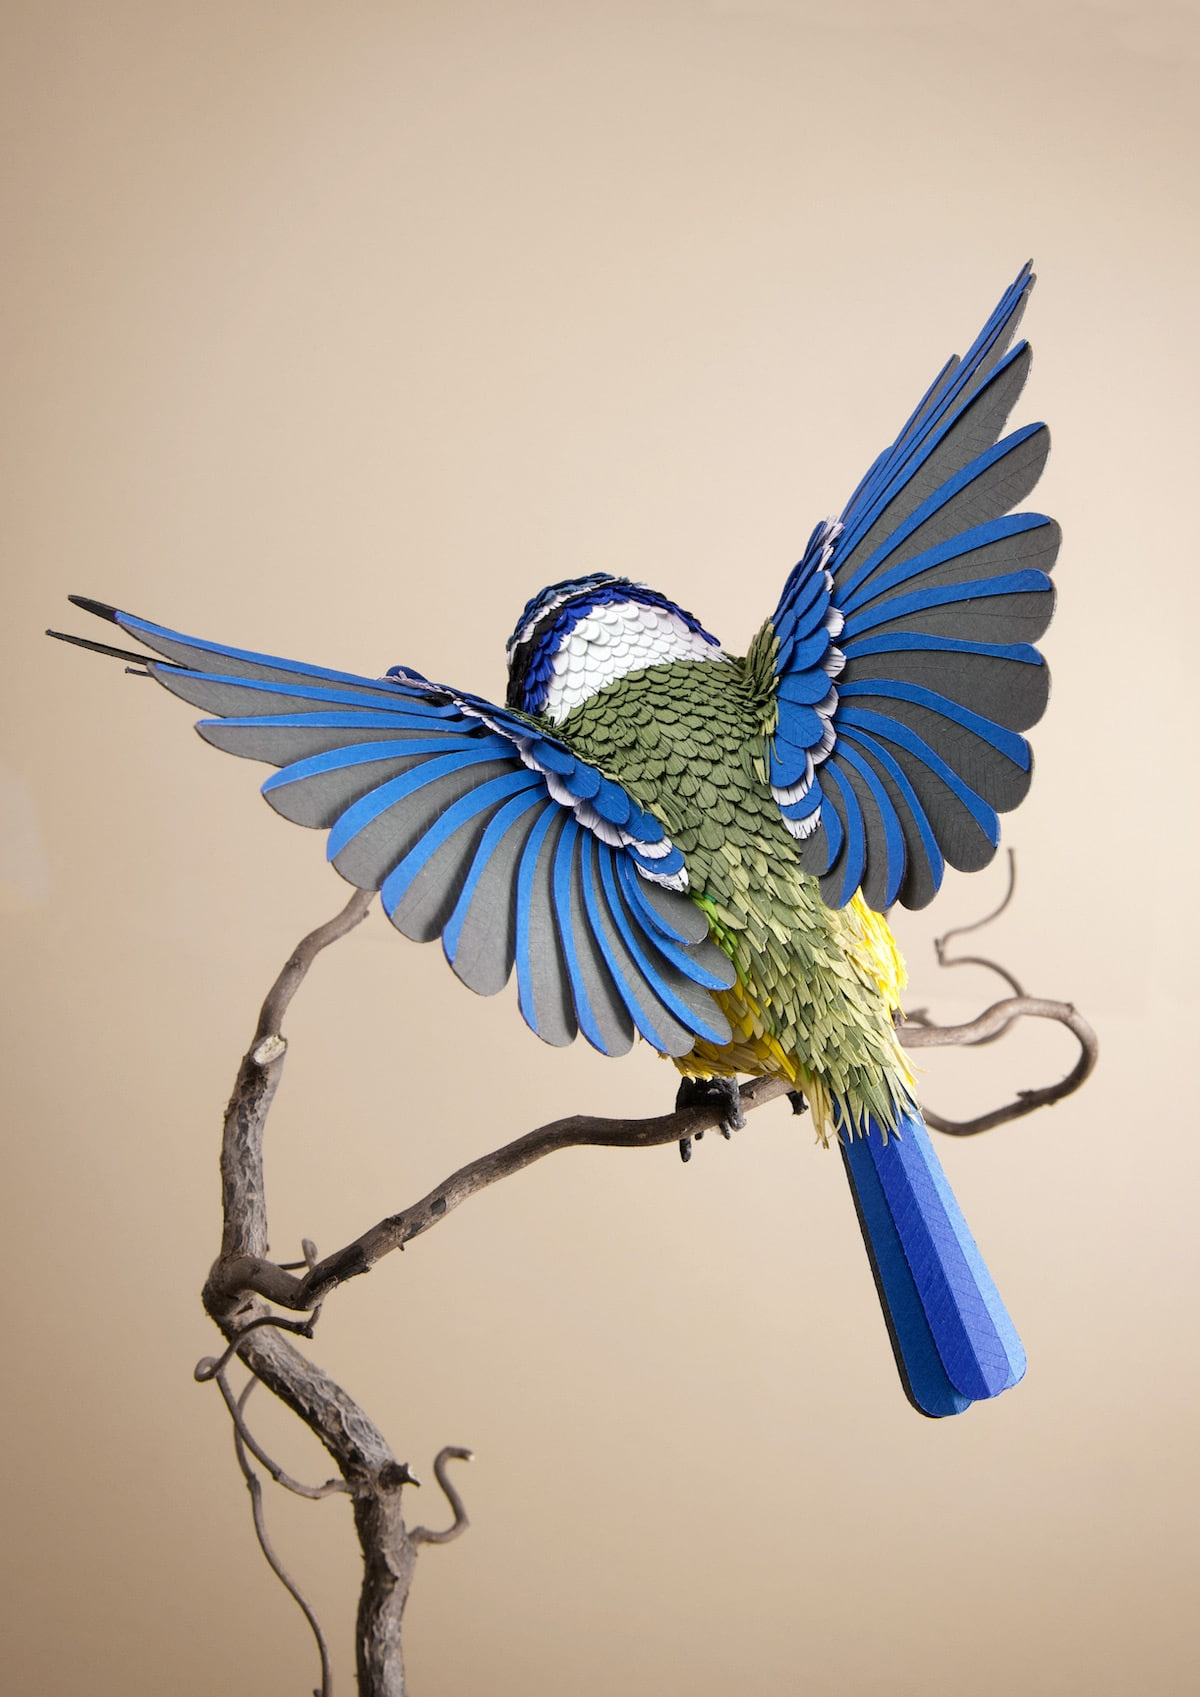 Bird Sculpture Made of Paper by Lisa Lloyd